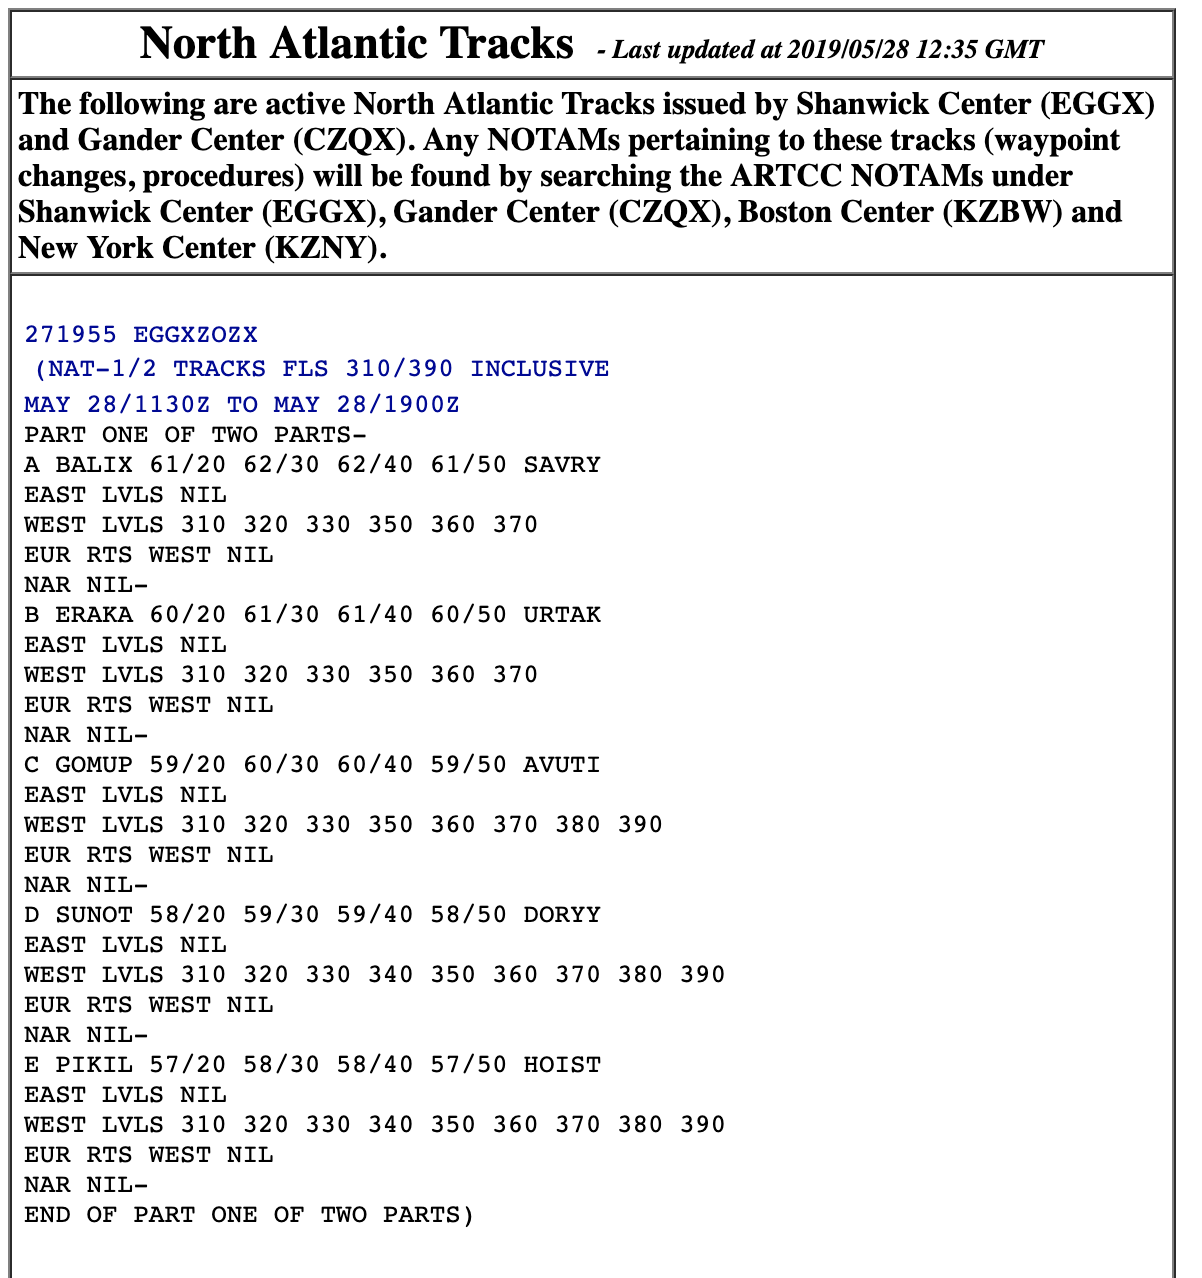 The Track Message Indicator tells pilots which tracks are valid for their flight.